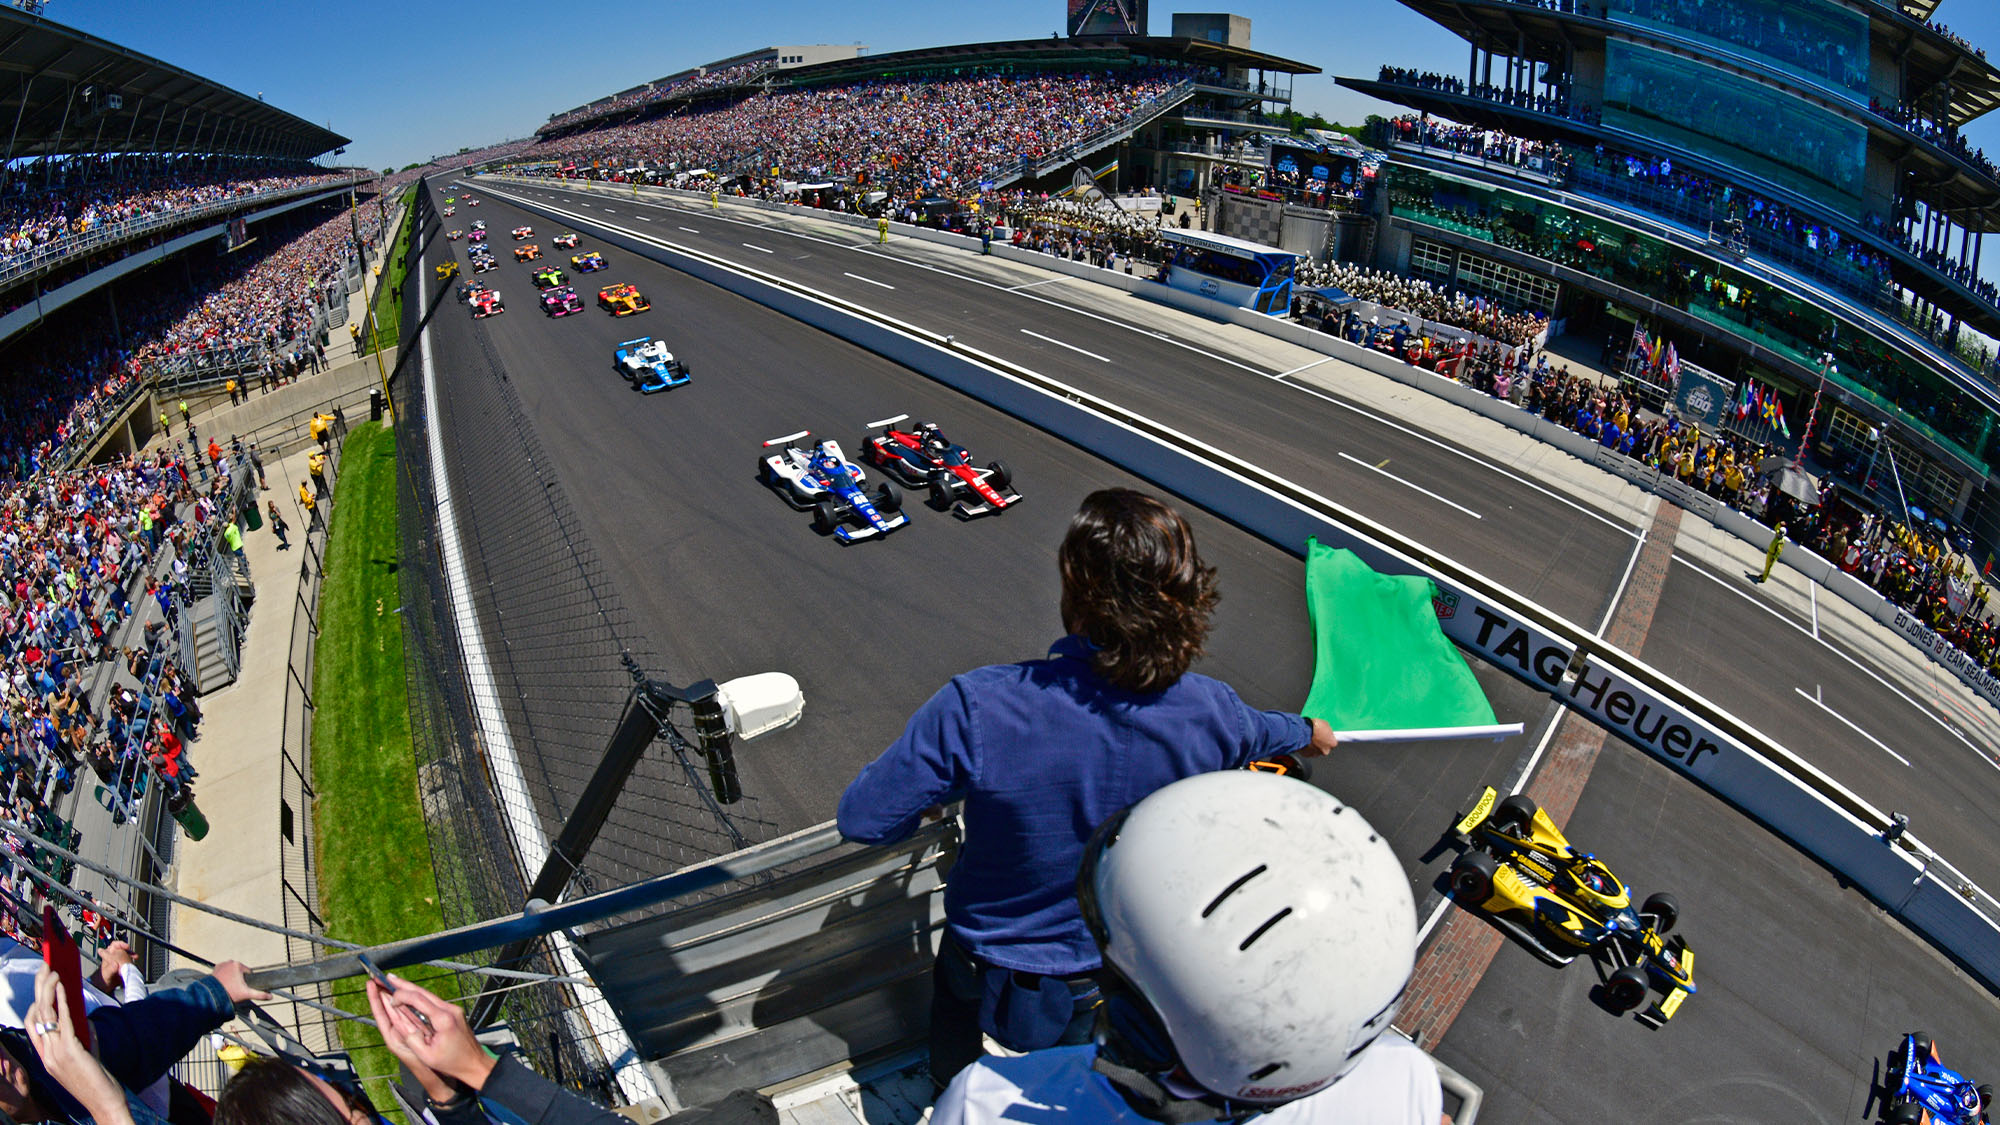 Start of the 2021 Indy 500